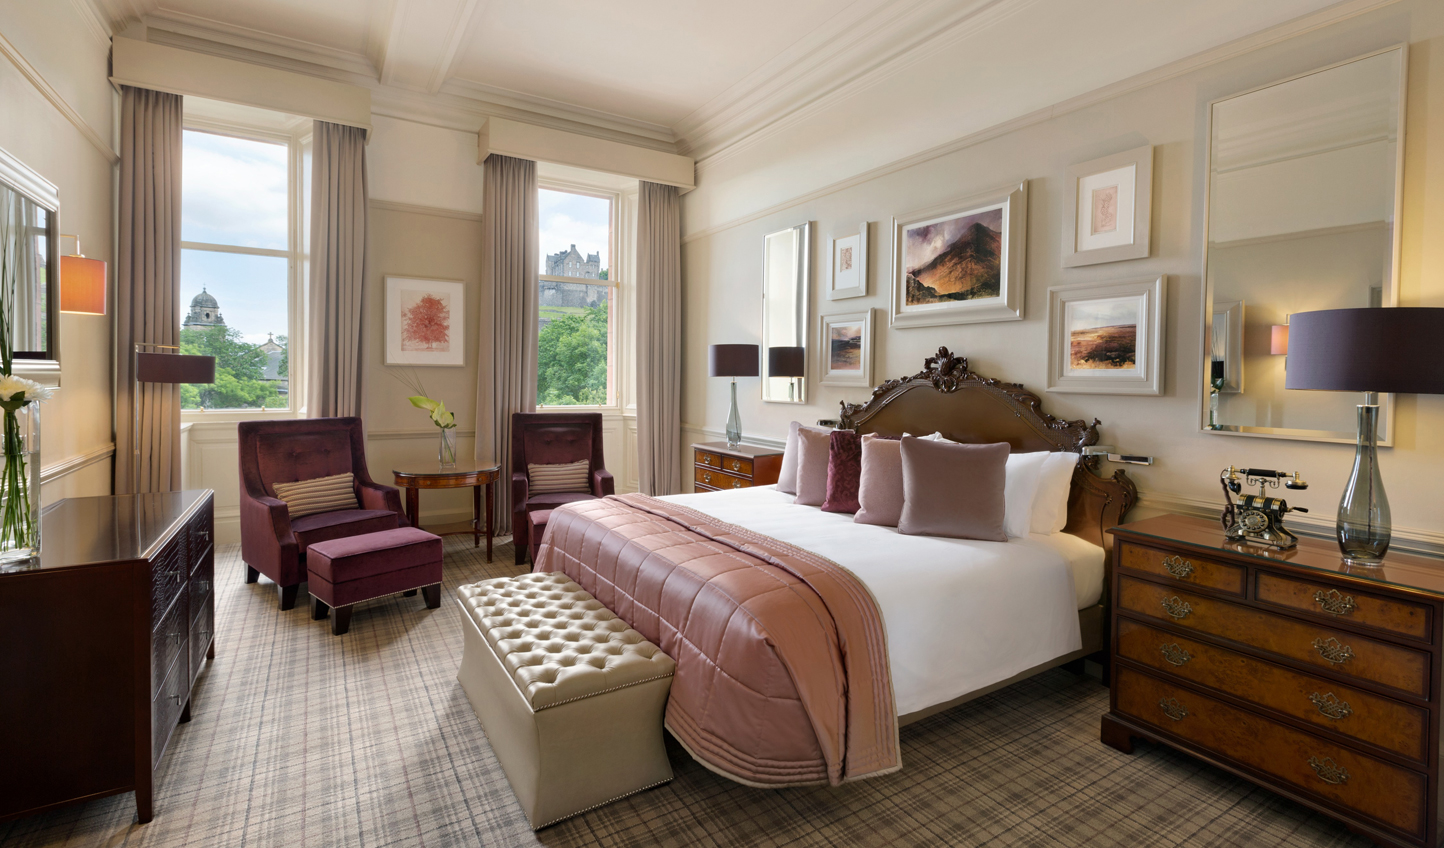 Get a taste of history in modern luxury with a stay in the Alexander Graham Bell Suite